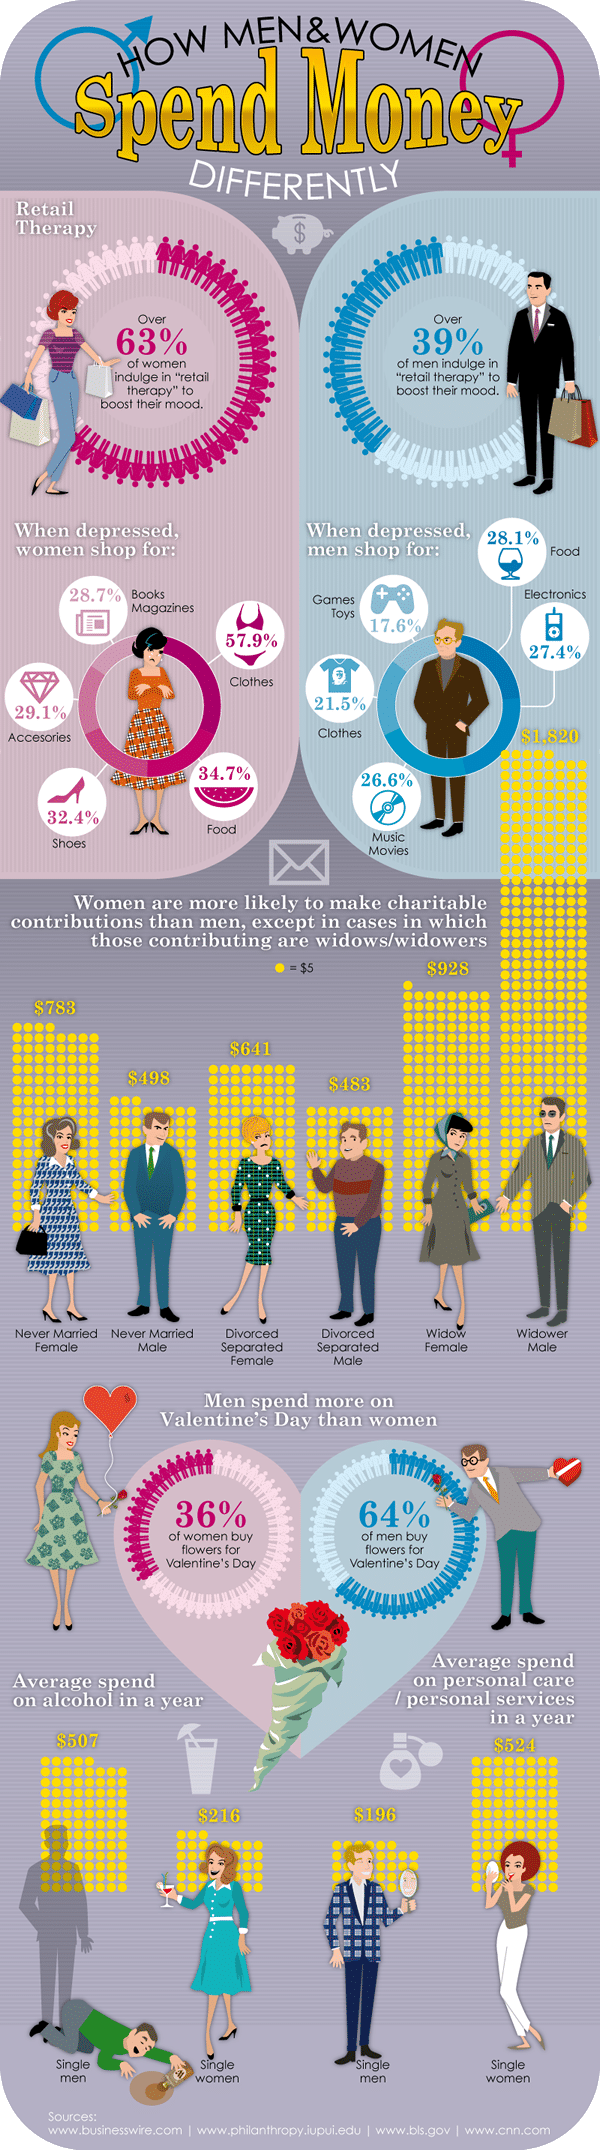 Men & Women's Spending Habits Compared [Infographic]